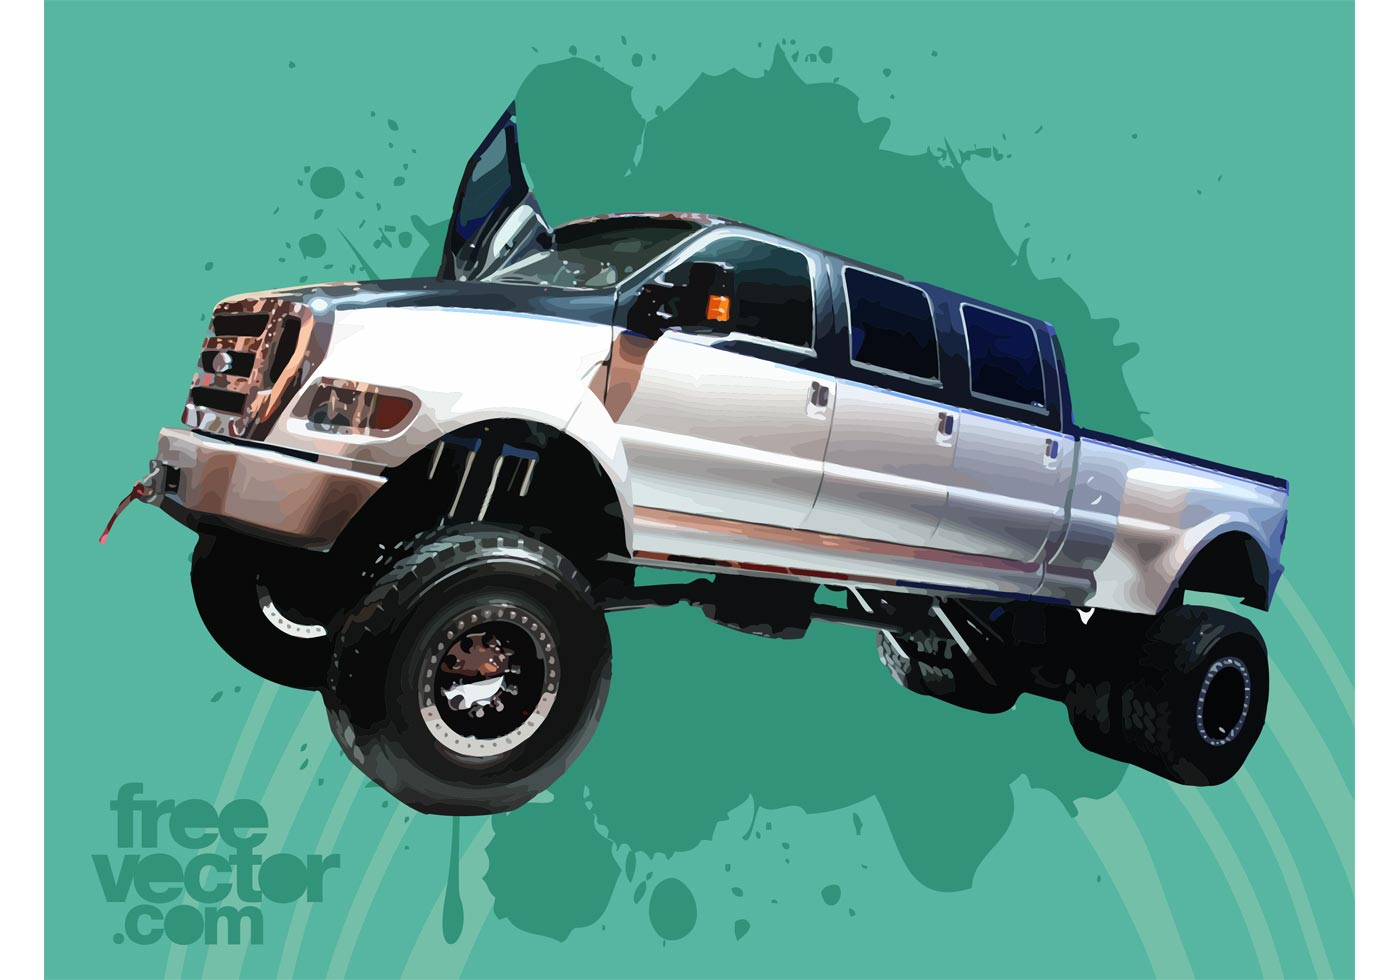 hight resolution of ford f650 super duty truck download free vector art stock graphics images